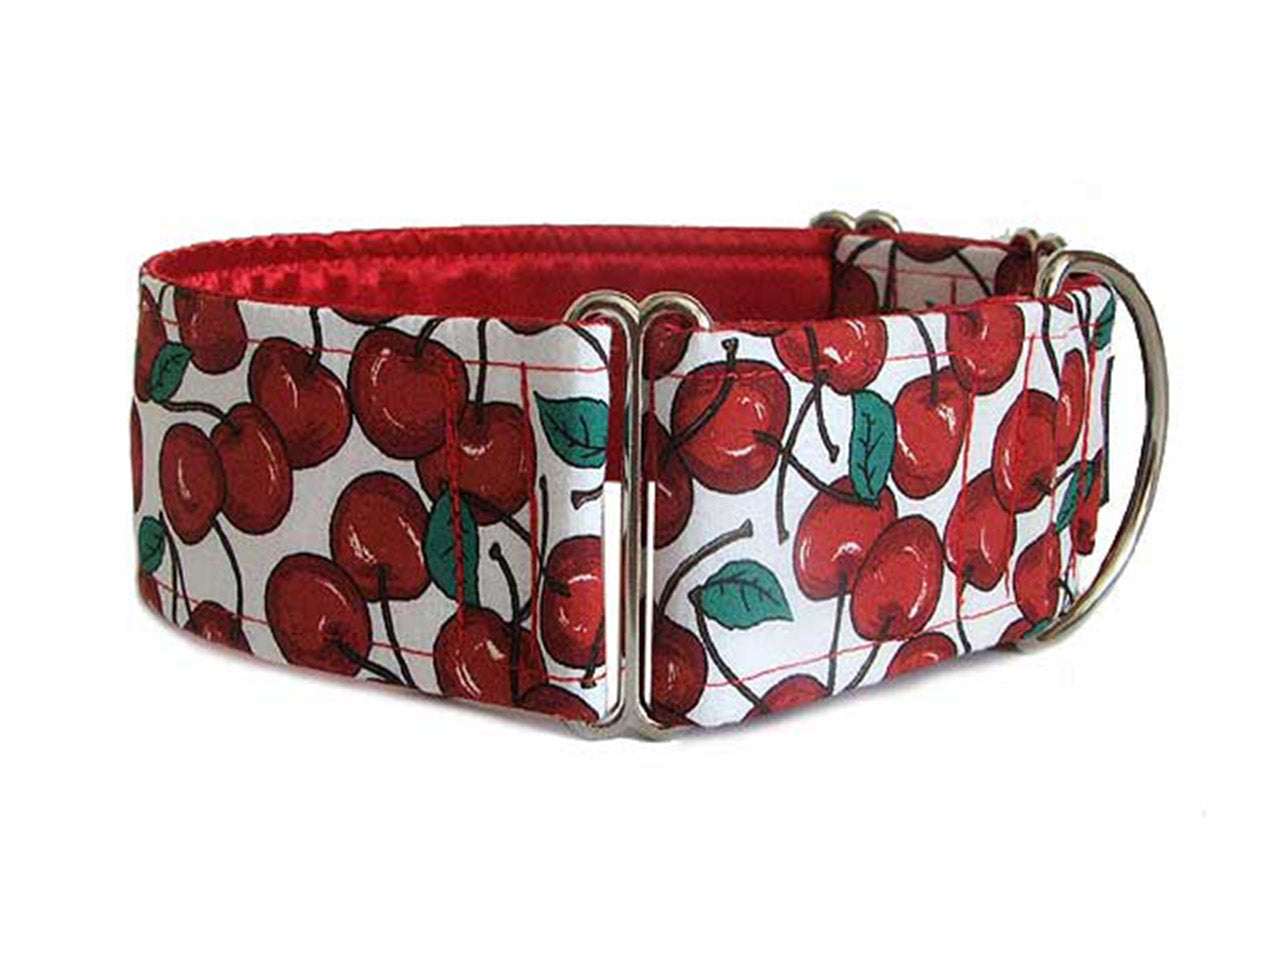 Bright red cherries add a dash of pizzazz to any pup's wardrobe!